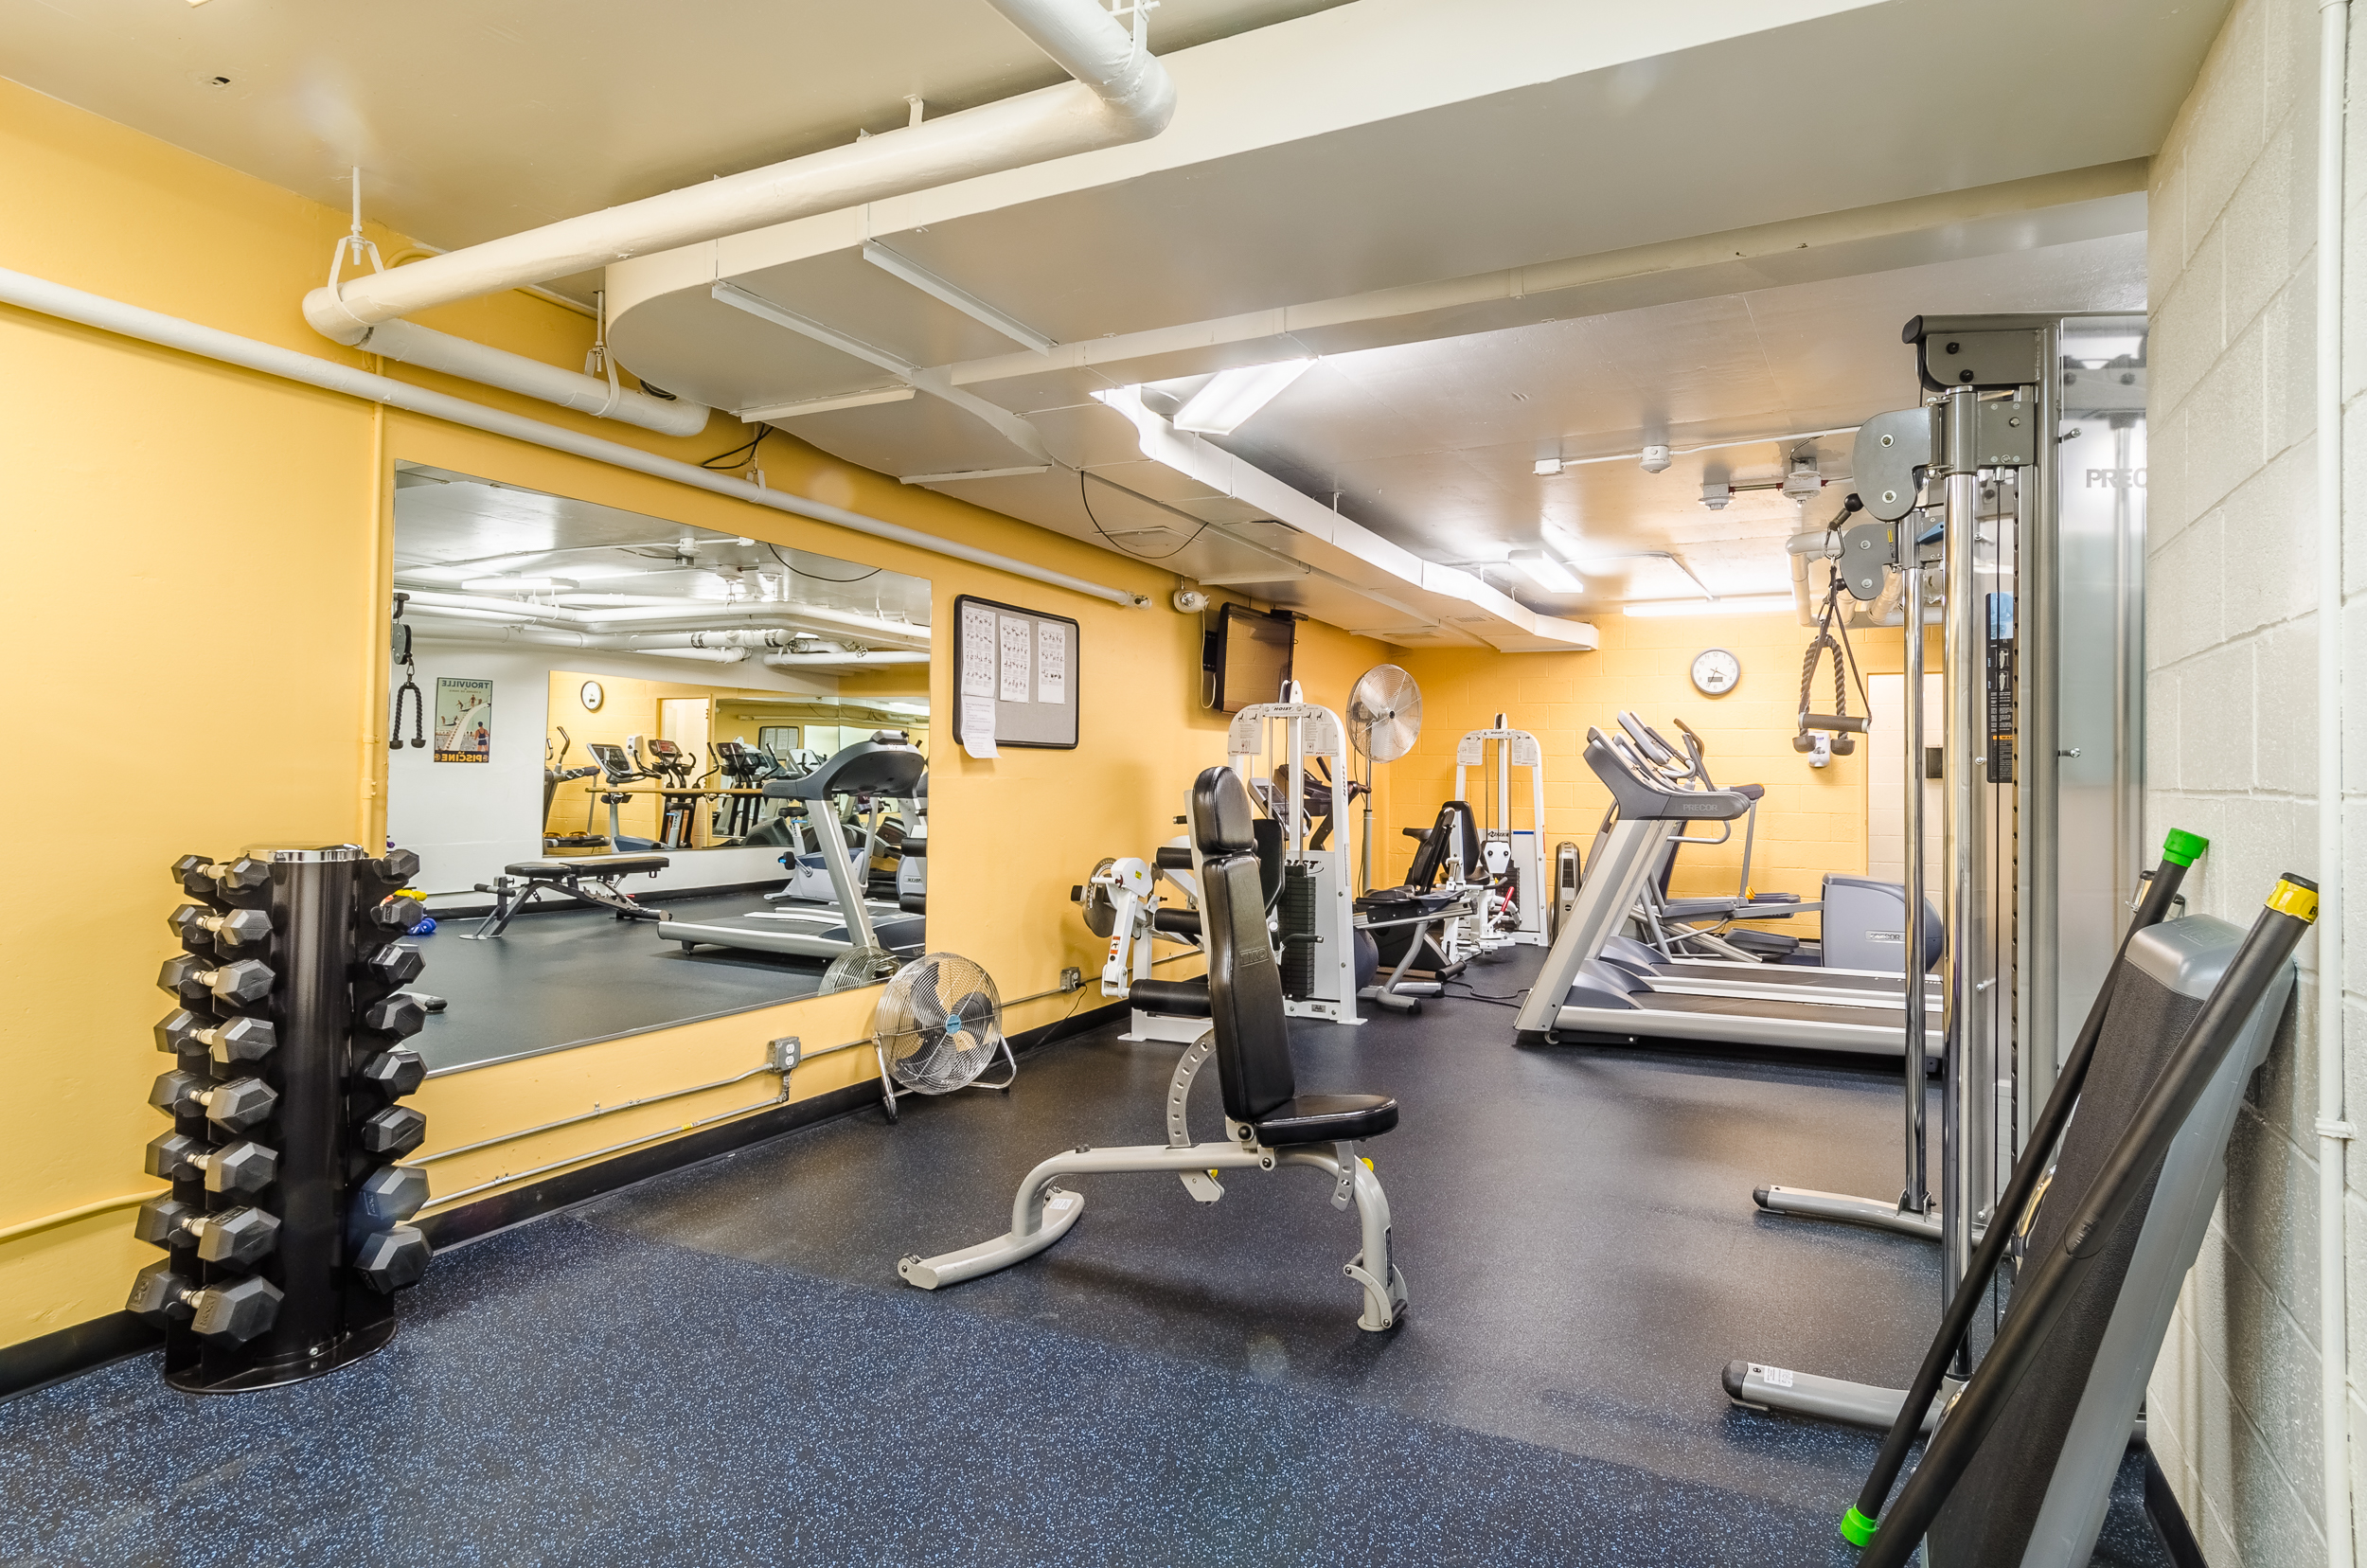 33_Watergate West Fitness Room 02 (web).jpg